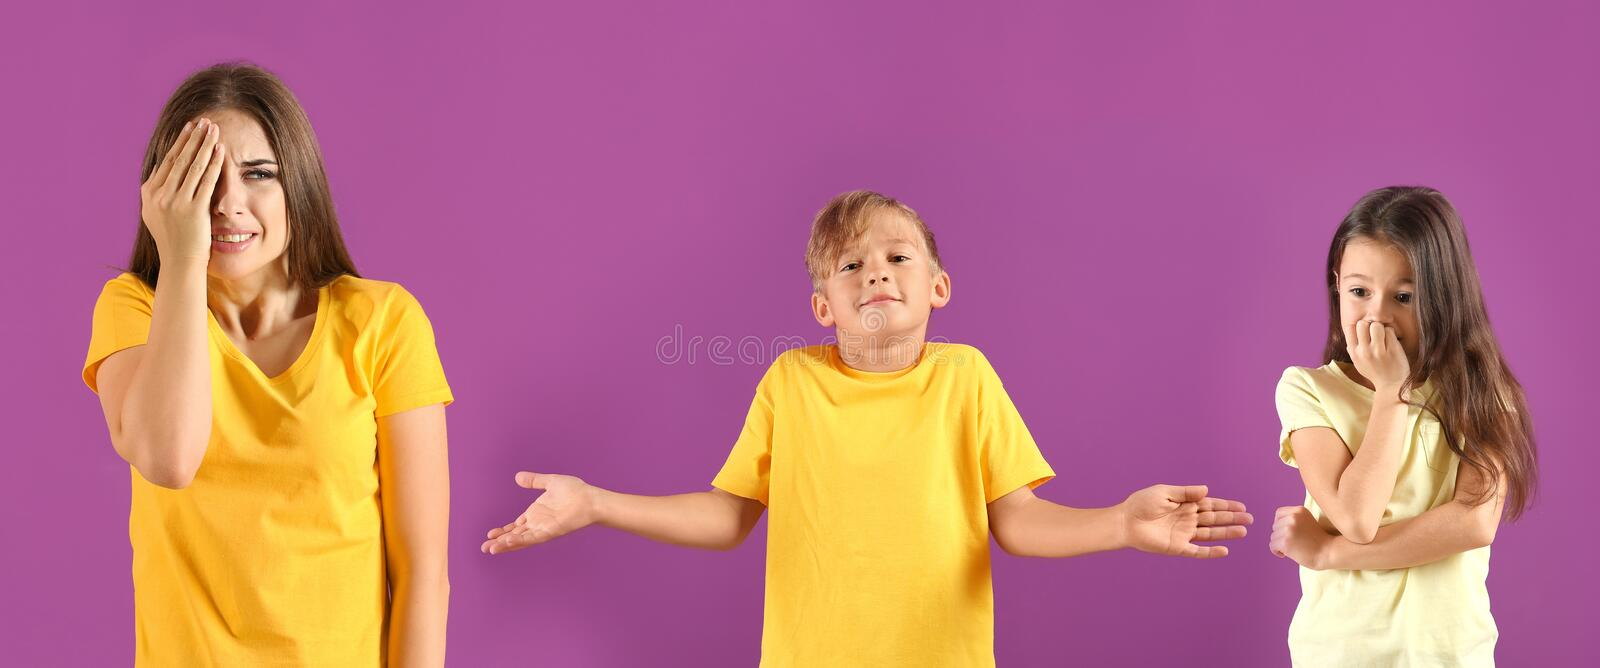 Emotional young woman after making mistake on color background royalty free stock image